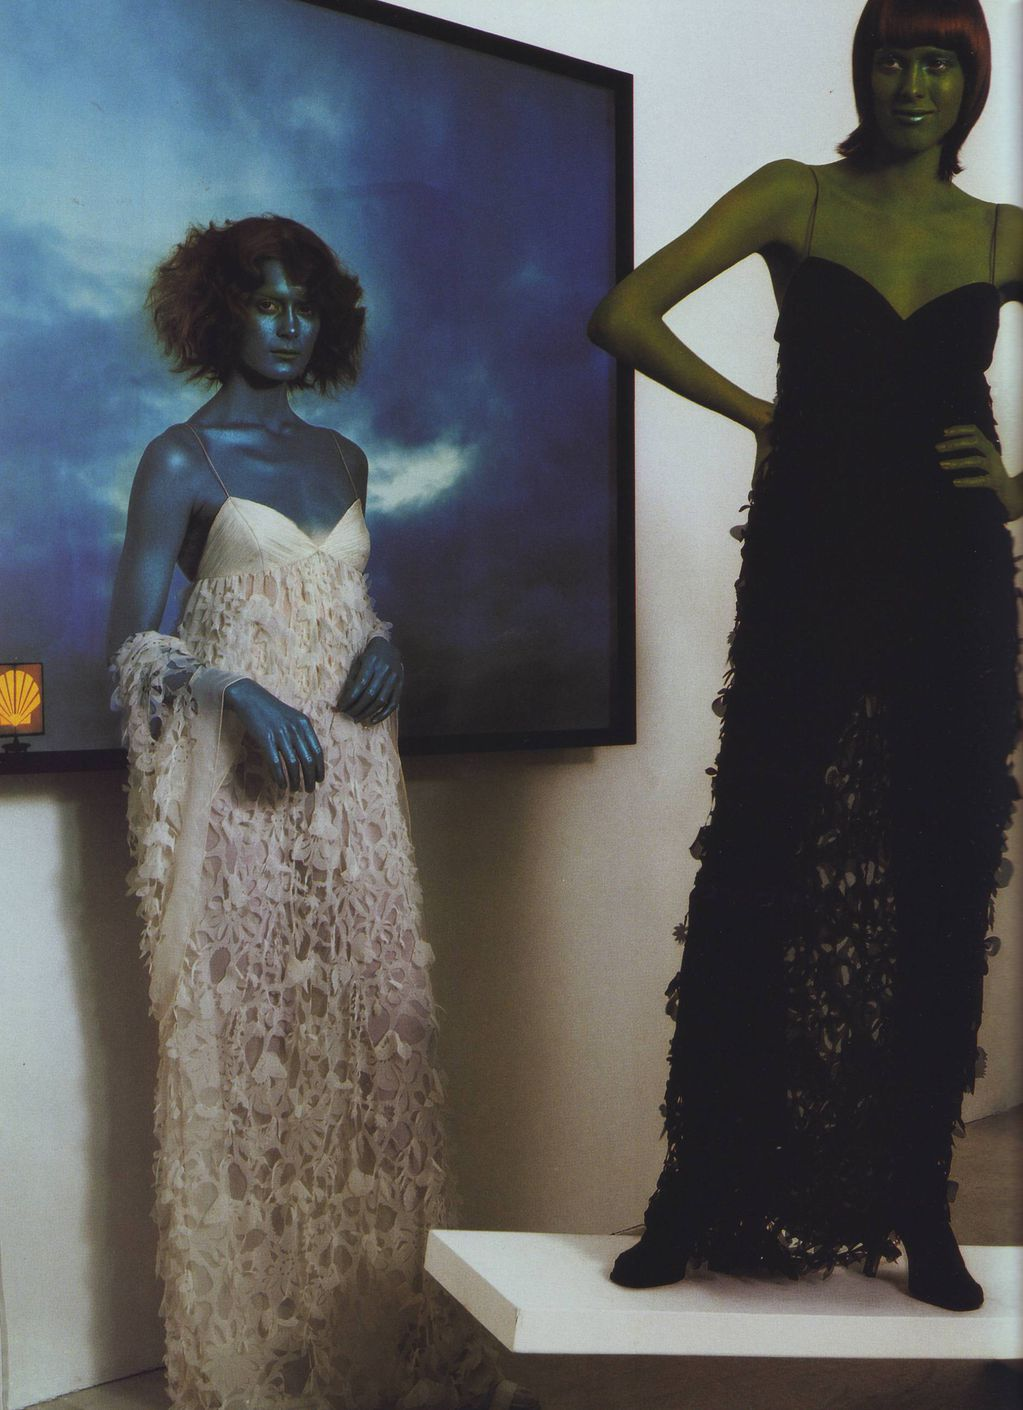 Vogue Italia March 1999 Couture report by Steven MEISEL 1